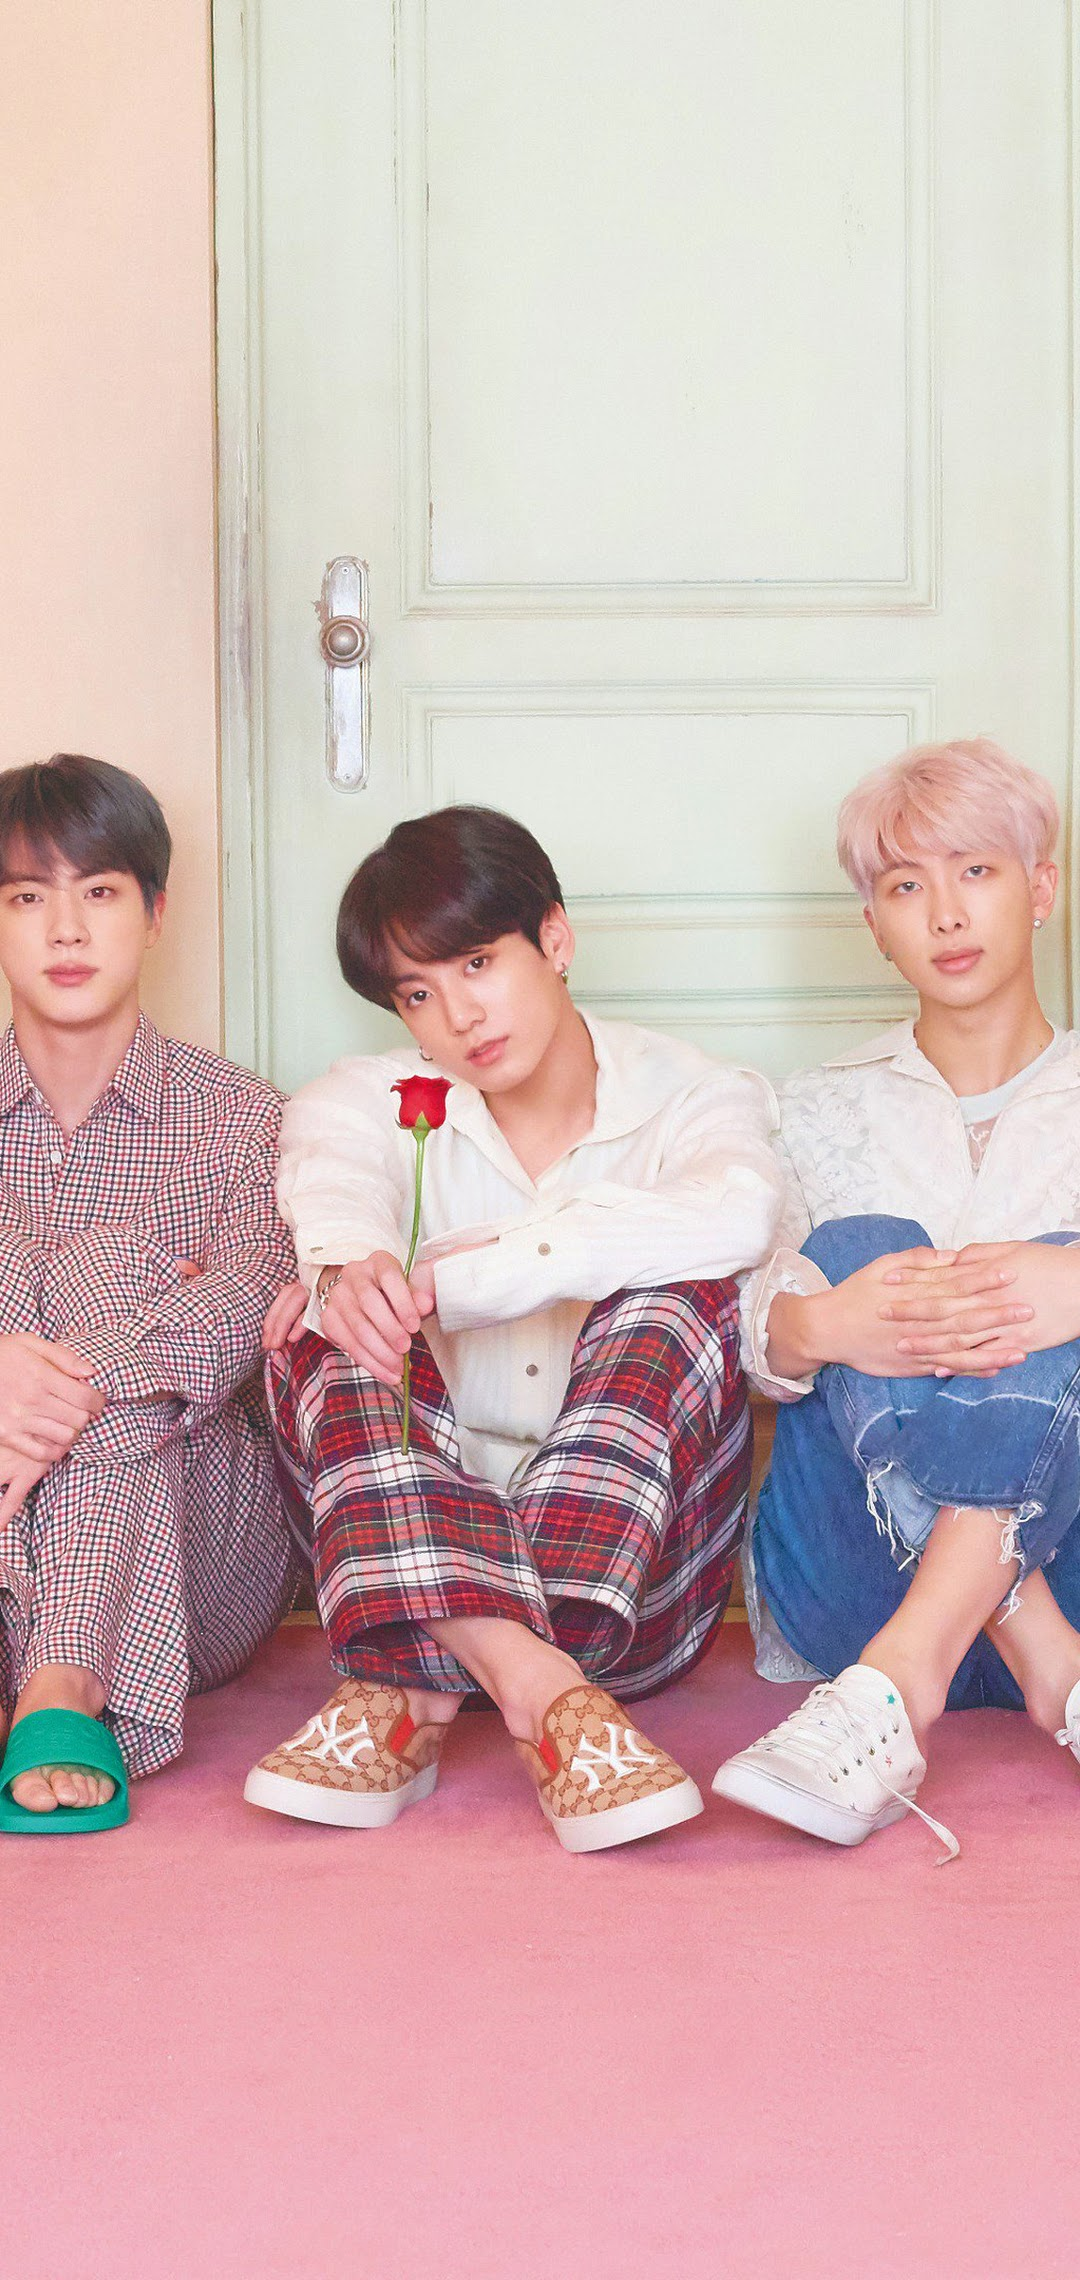 Bts Map Of The Soul Persona Members 4k Wallpaper 25